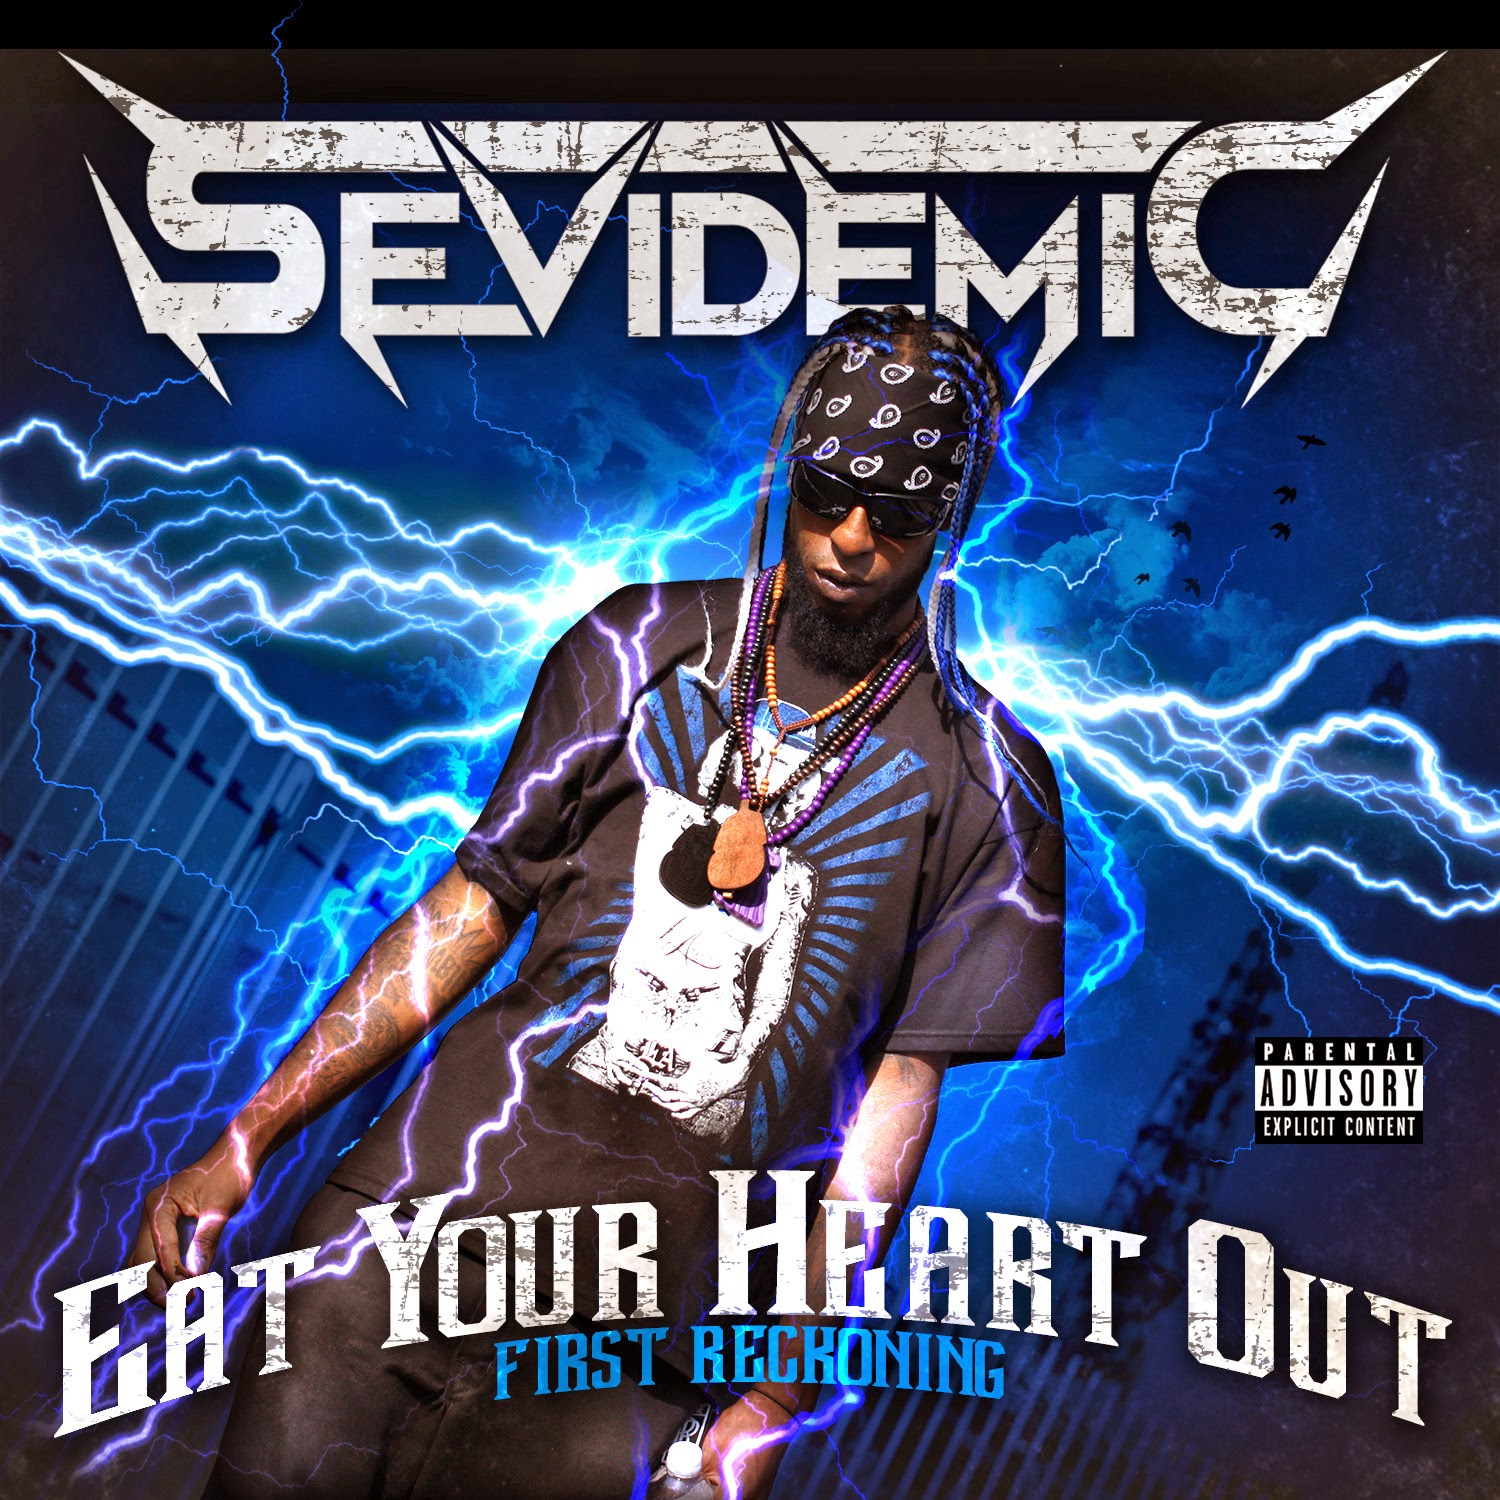 http://sevidemic.bigcartel.com/product/eat-your-heart-out-first-reckoning-pre-order